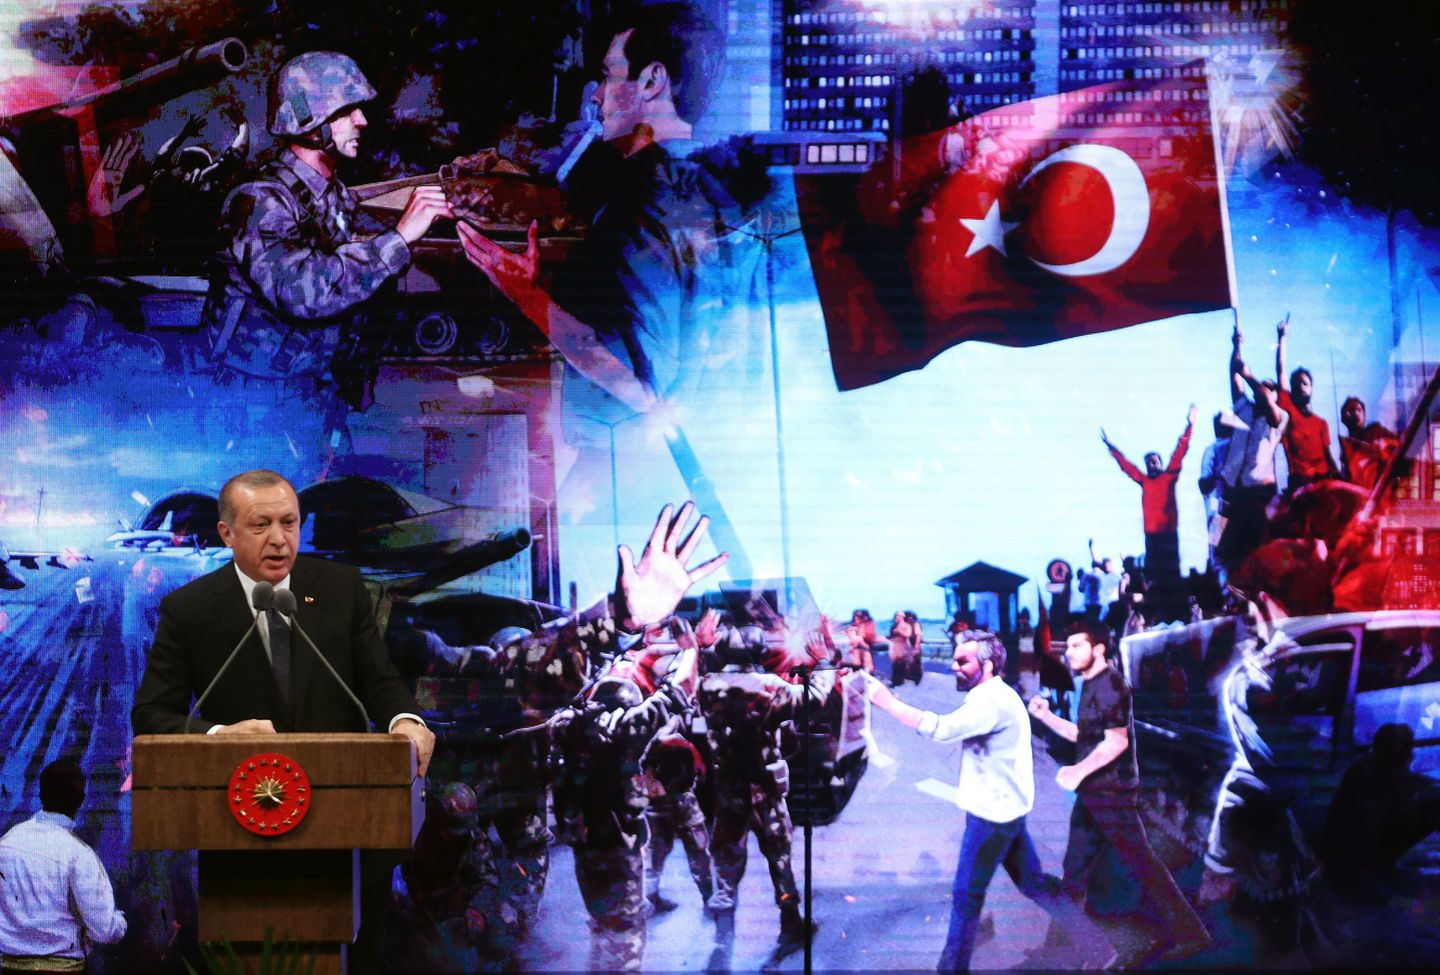 One year after coup attempt, Turkey is still battling